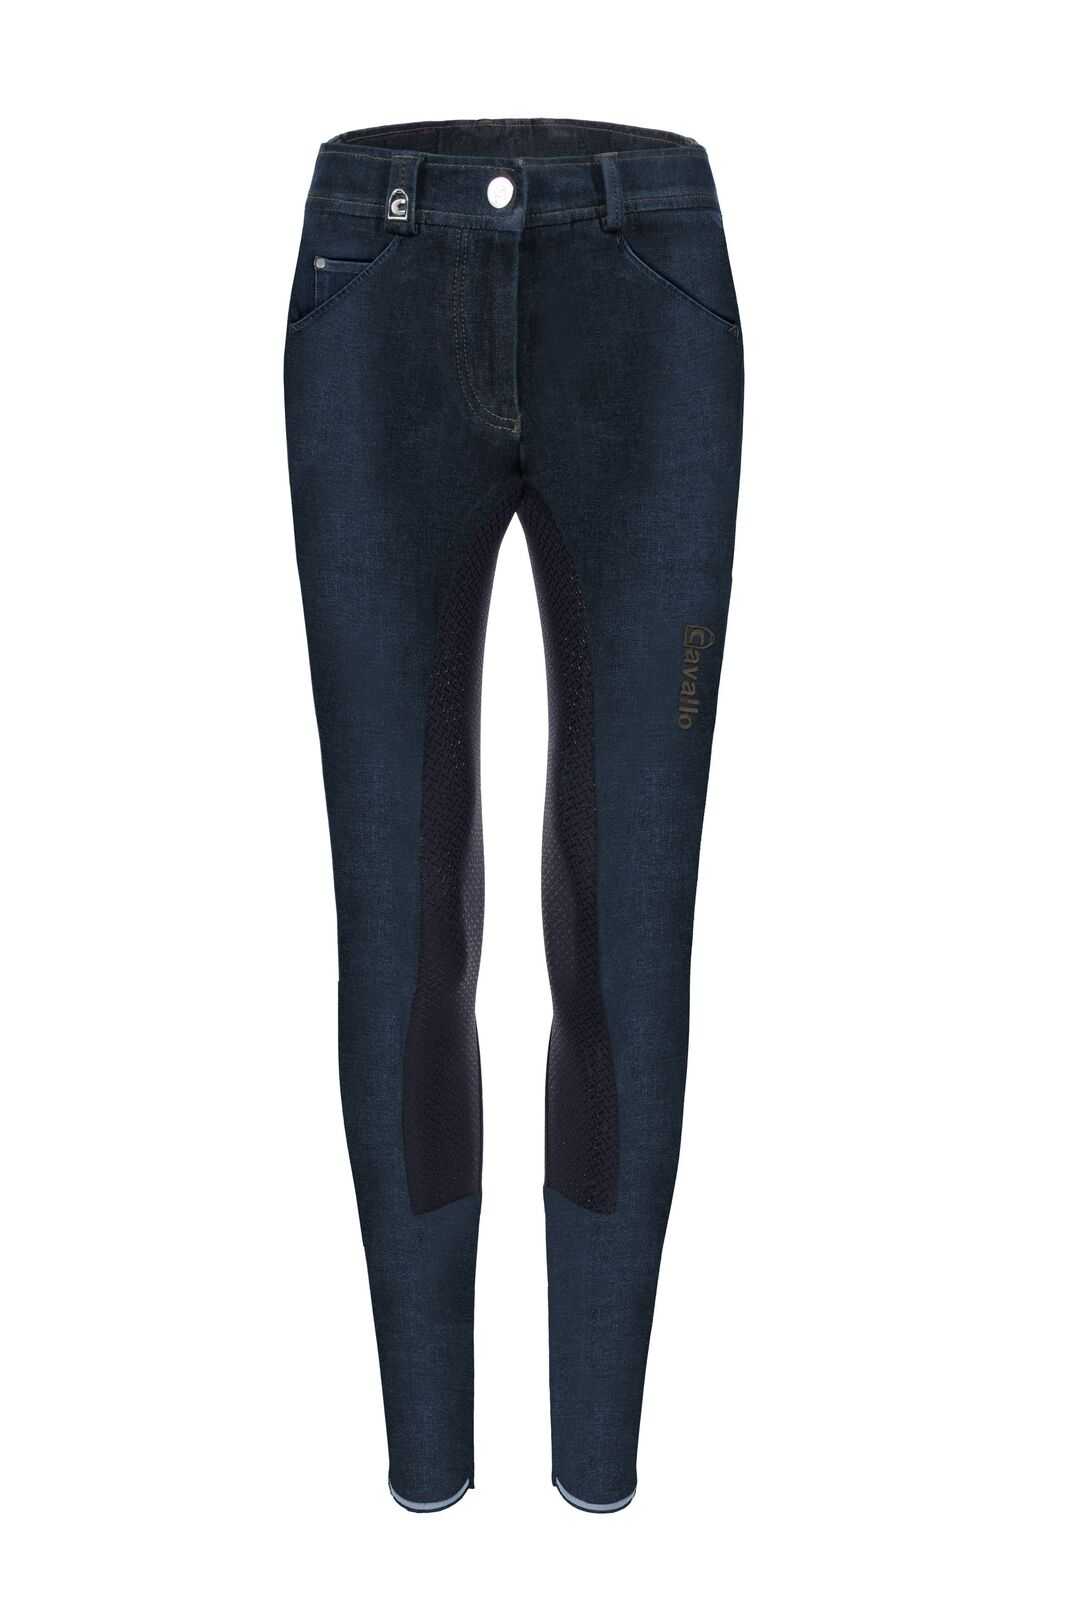 Cavallo breeches Colino GRIP DNM darkbluee AW 18 19